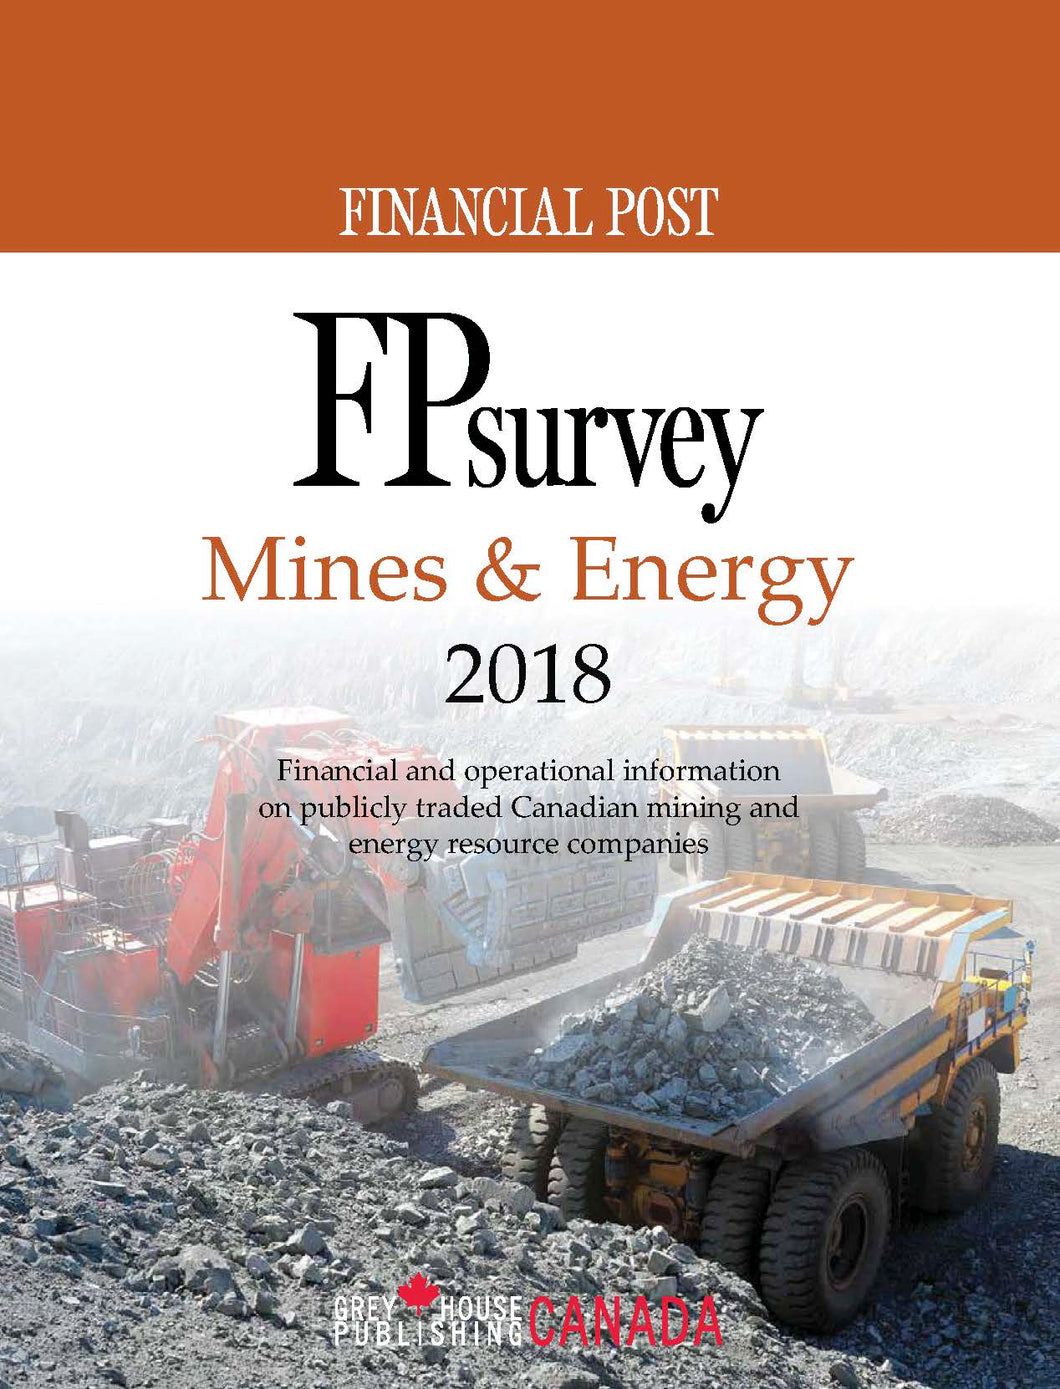 FP SURVEY - MINES & ENERGY 2018